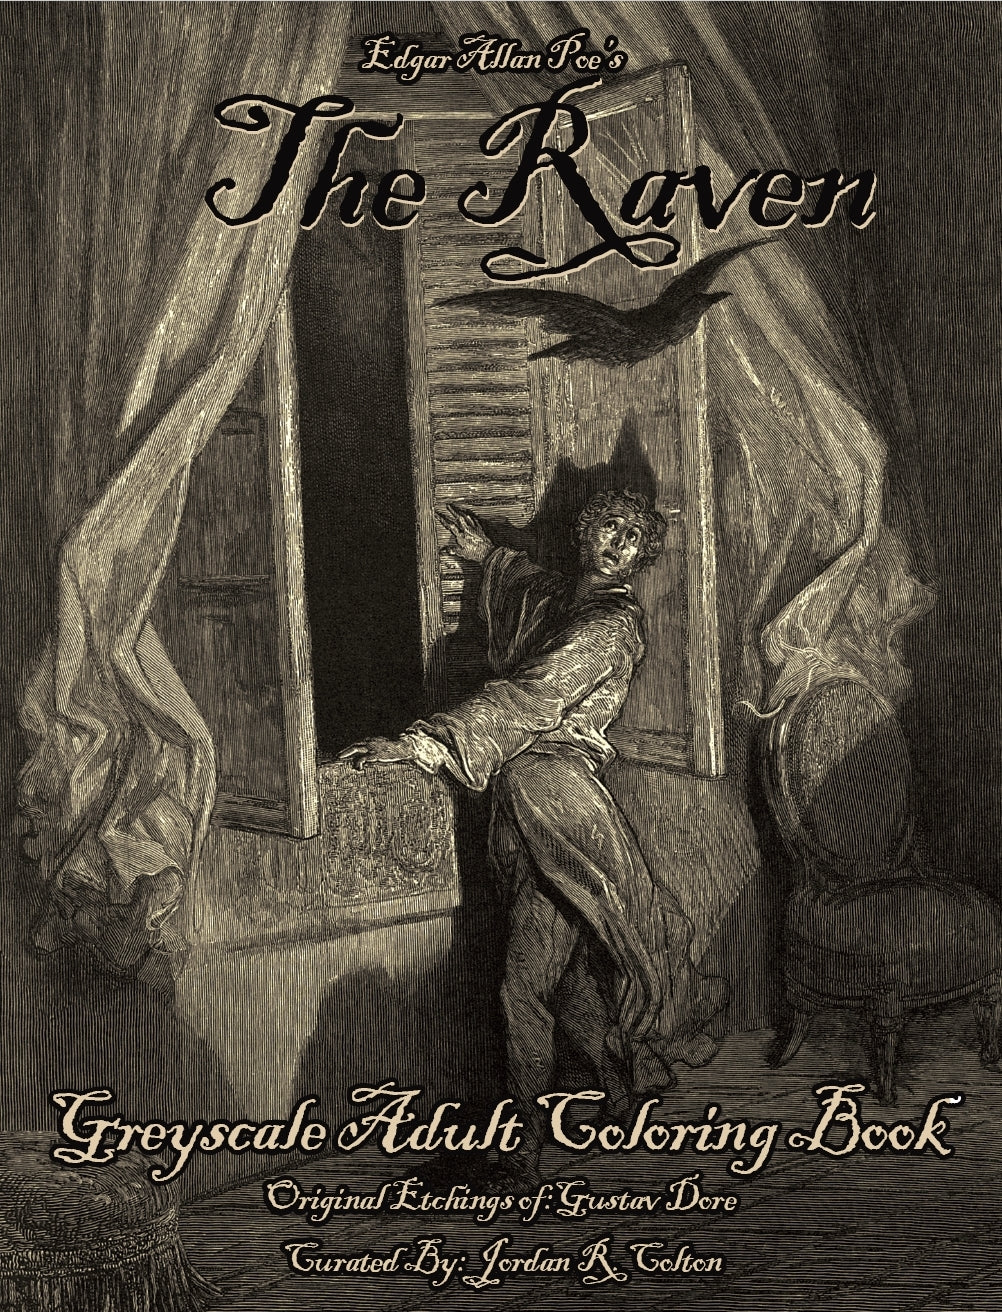 Edgar Allan Poe's The Raven Greyscale Coloring Book